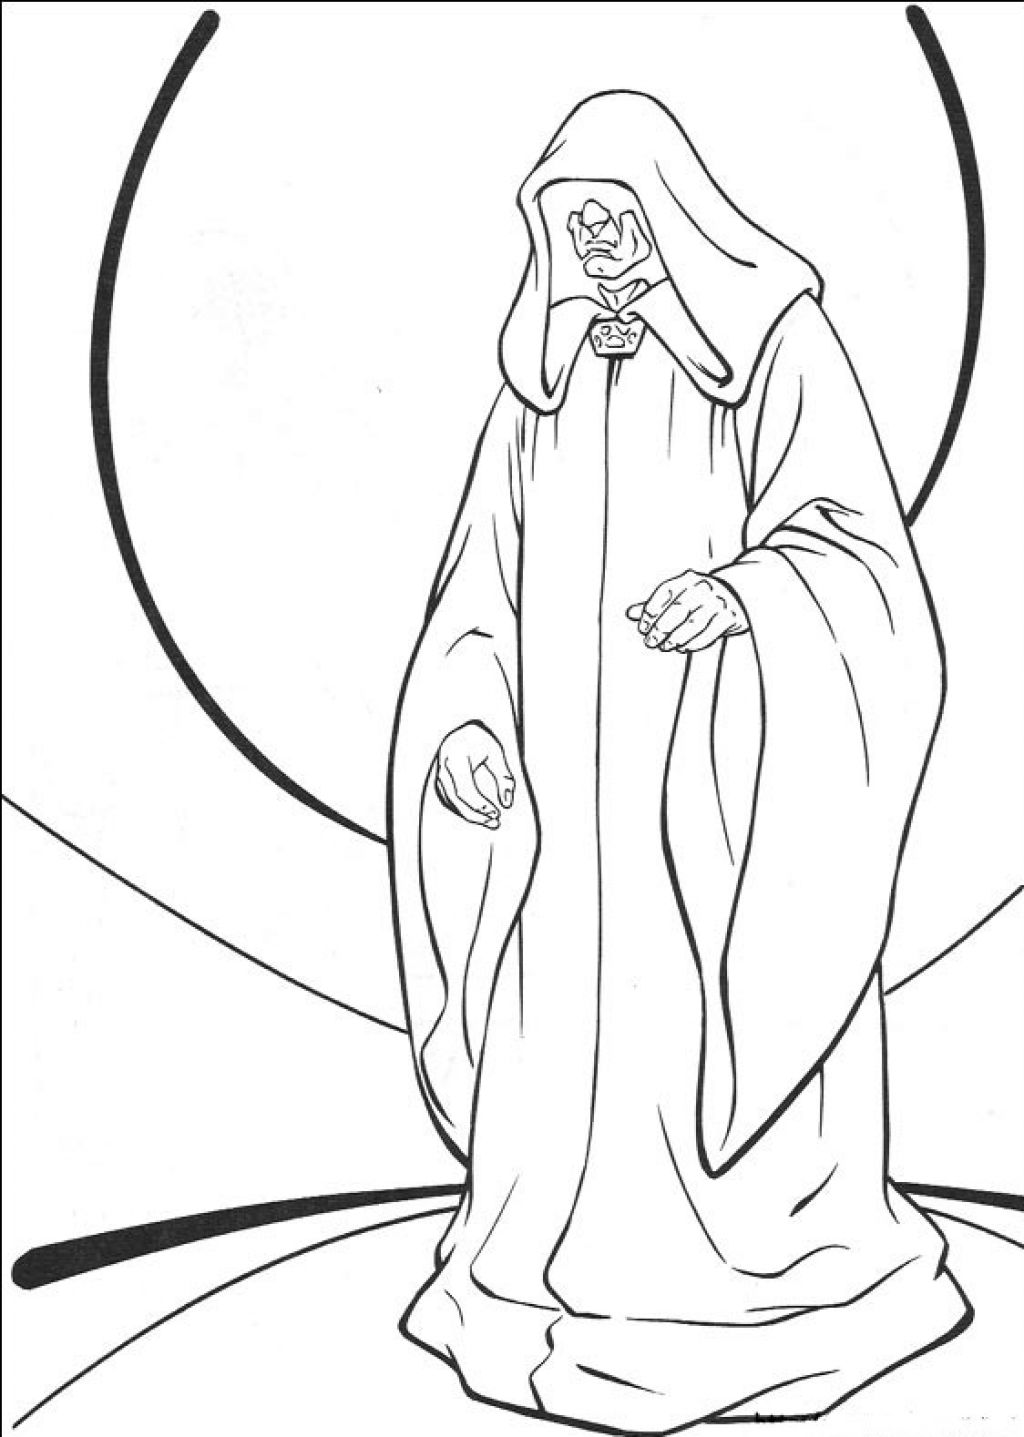 Star Wars Coloring Pages Free Printable Star Wars Wars Coloring Pages Free